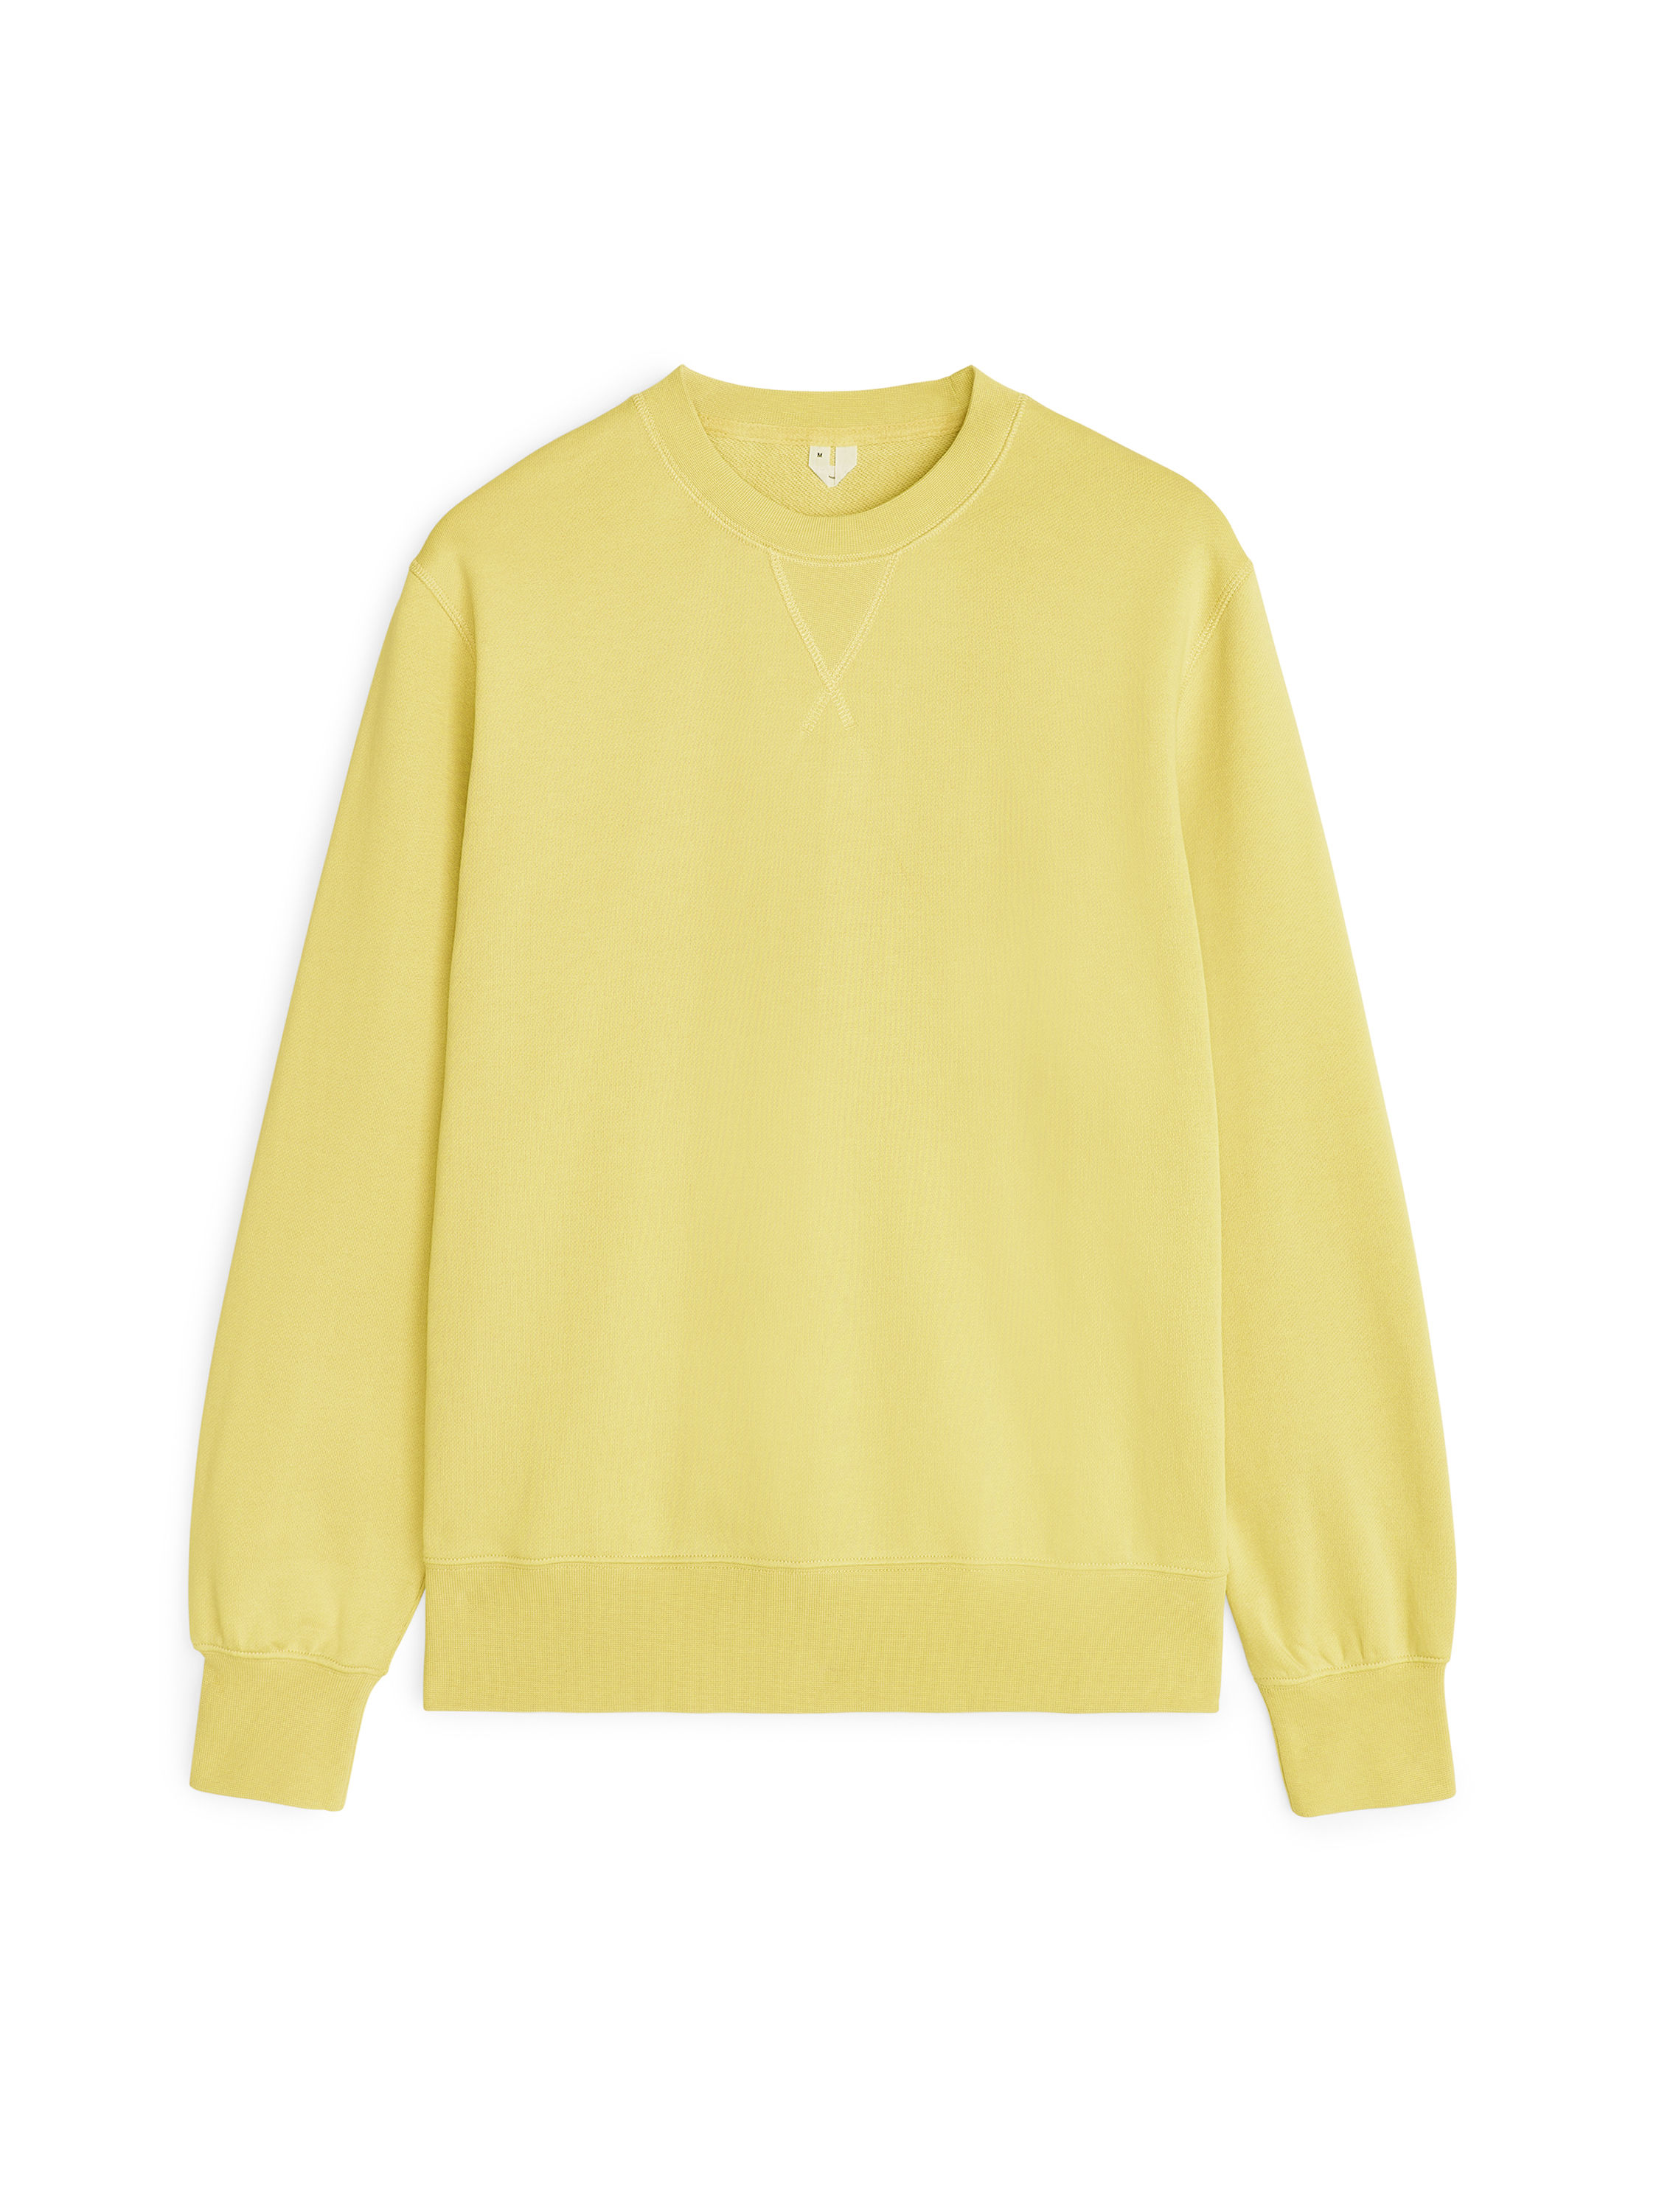 Fabric Swatch image of Arket french terry sweatshirt in yellow